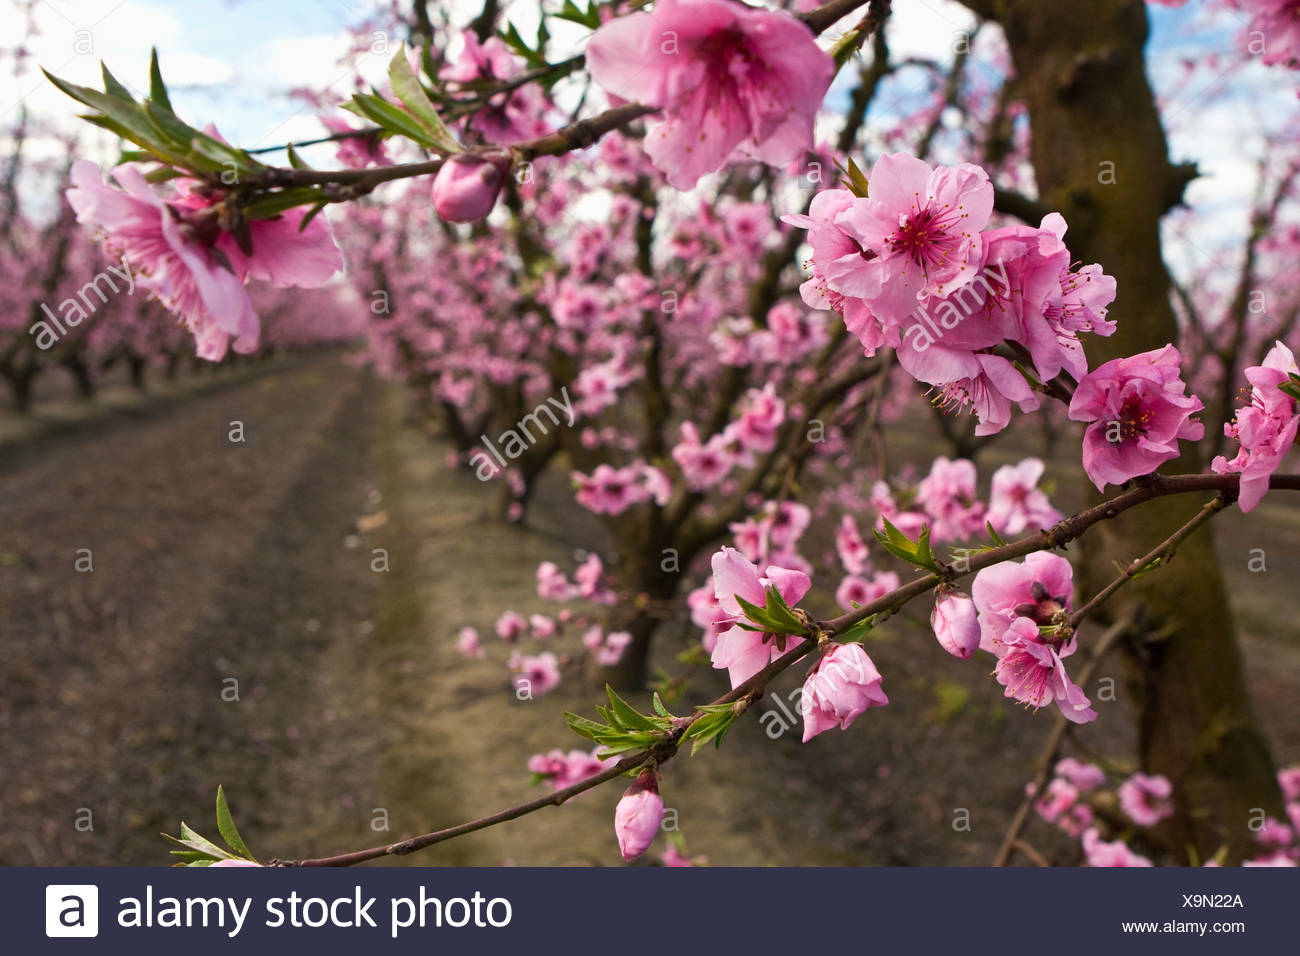 Agriculture - Closeup of peach blossoms at the full bloom stage with the orchard in the background / California, USA. - Stock Image